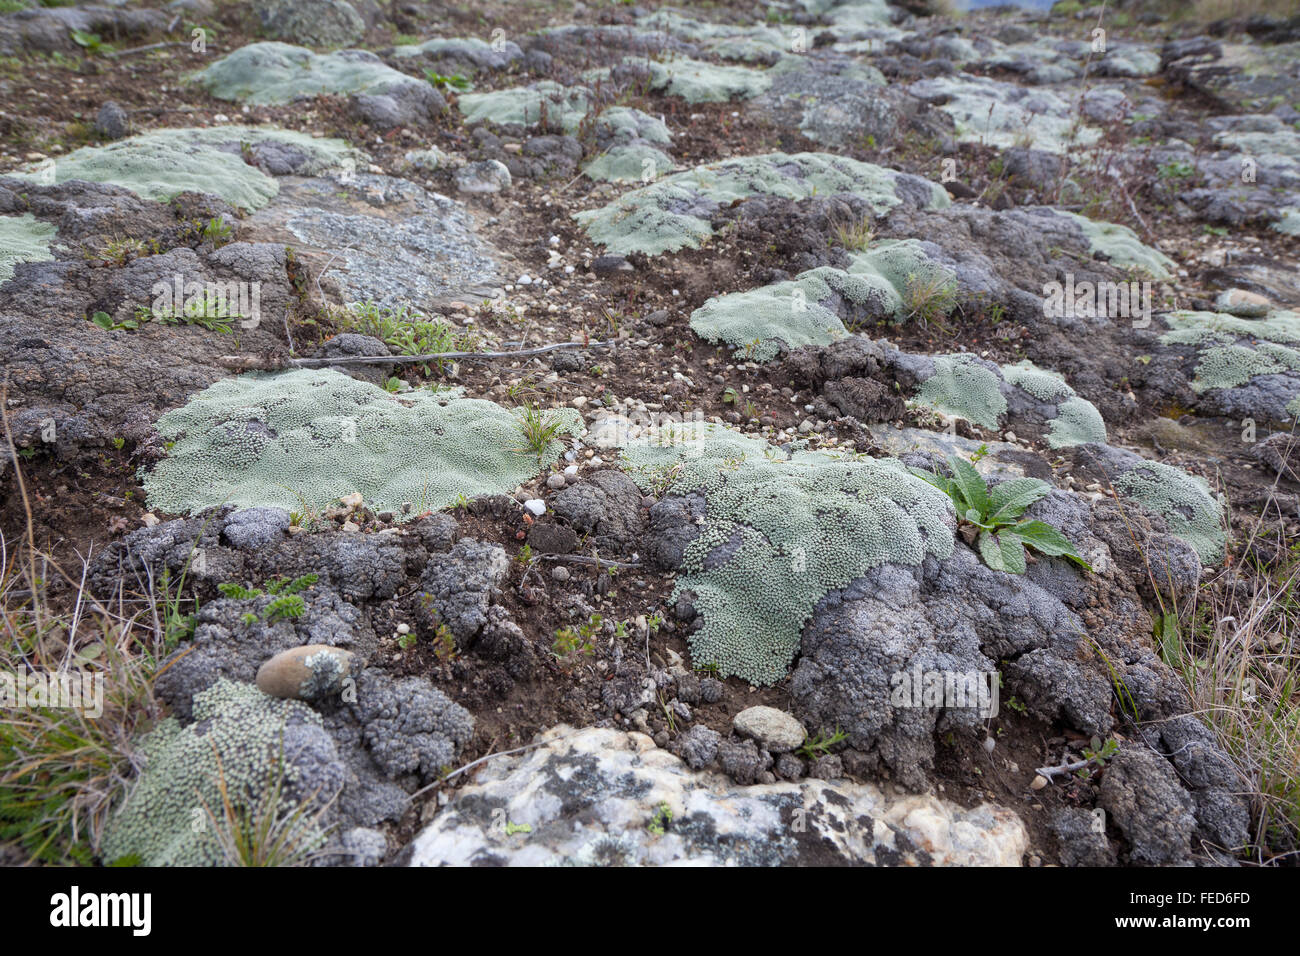 Lichen on the rocks in New Zealand - Stock Image